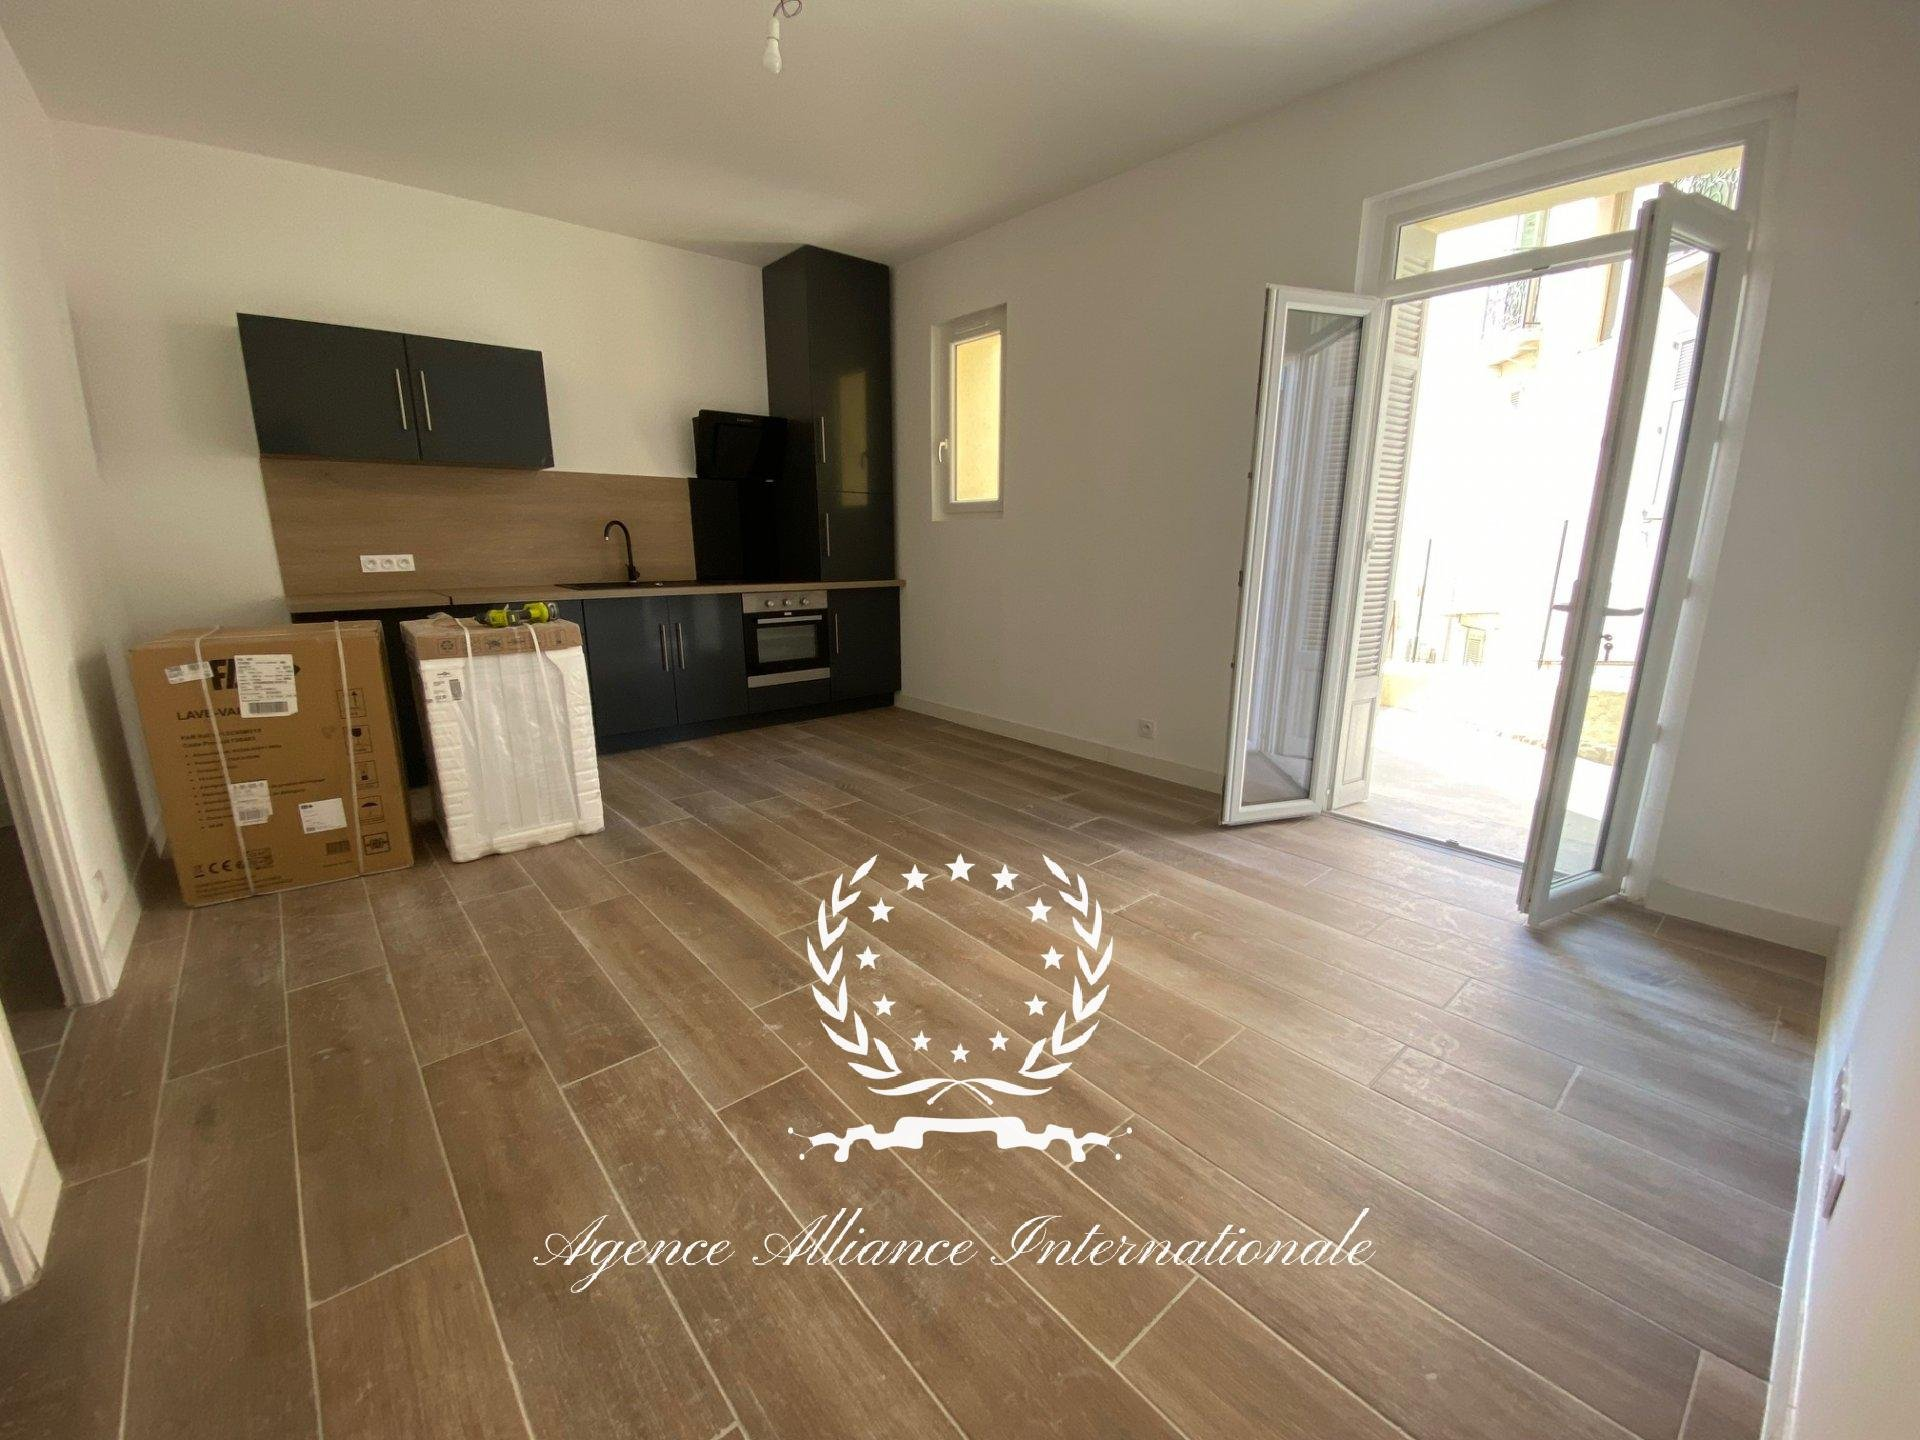 CANNES IMMEUBLE  216m²  - 6 appartements